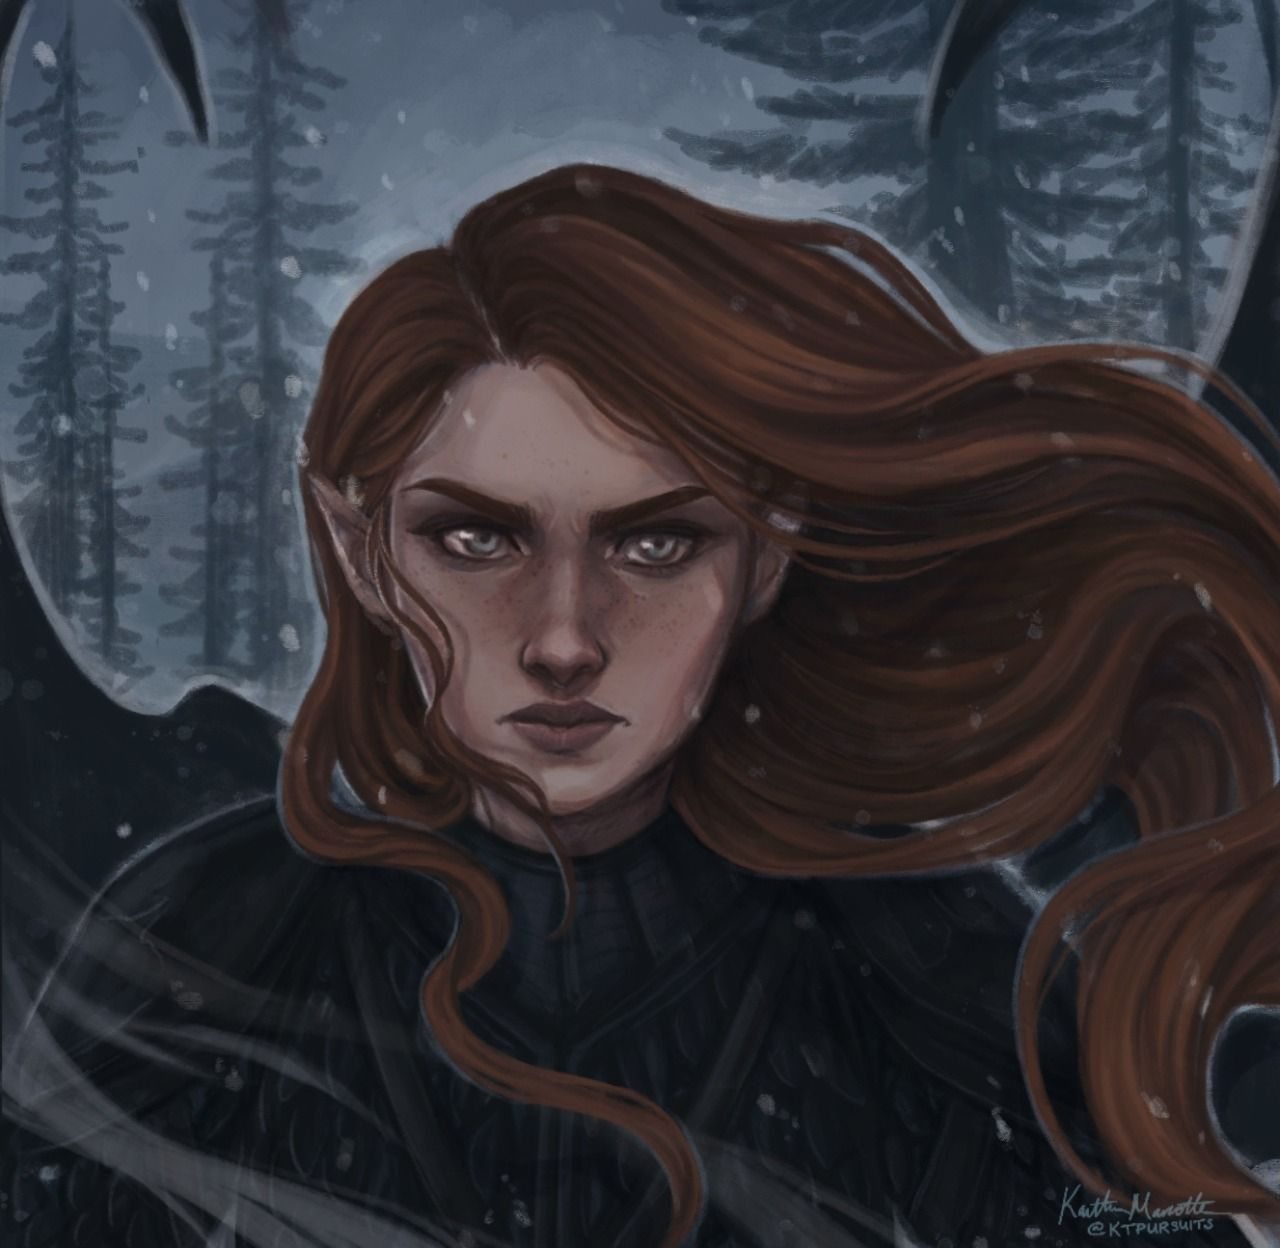 Pin By Lupitalepemontoya On Rhysand In 2020 Art Sarah J Maas A